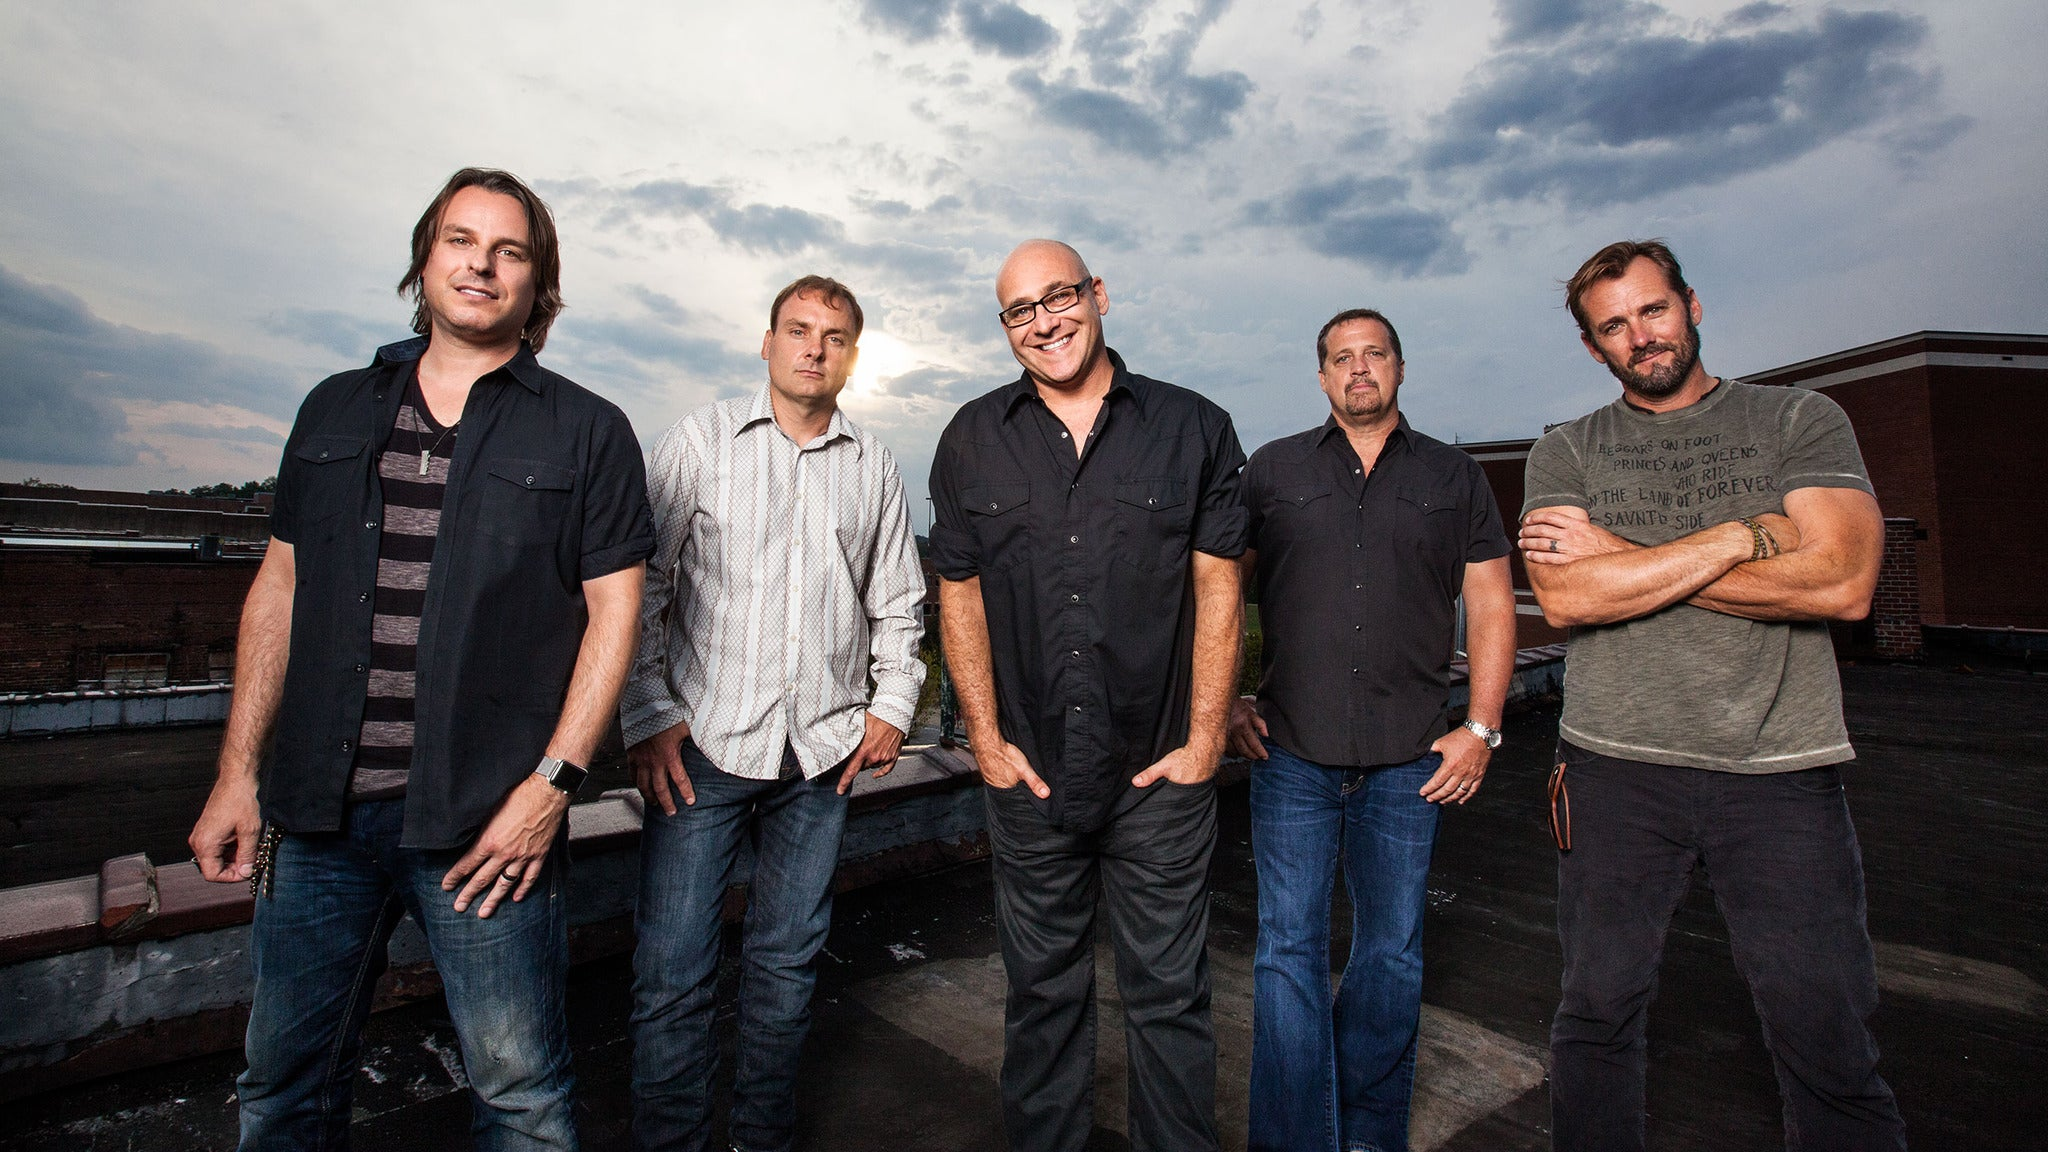 Sister Hazel at 8 Seconds Saloon